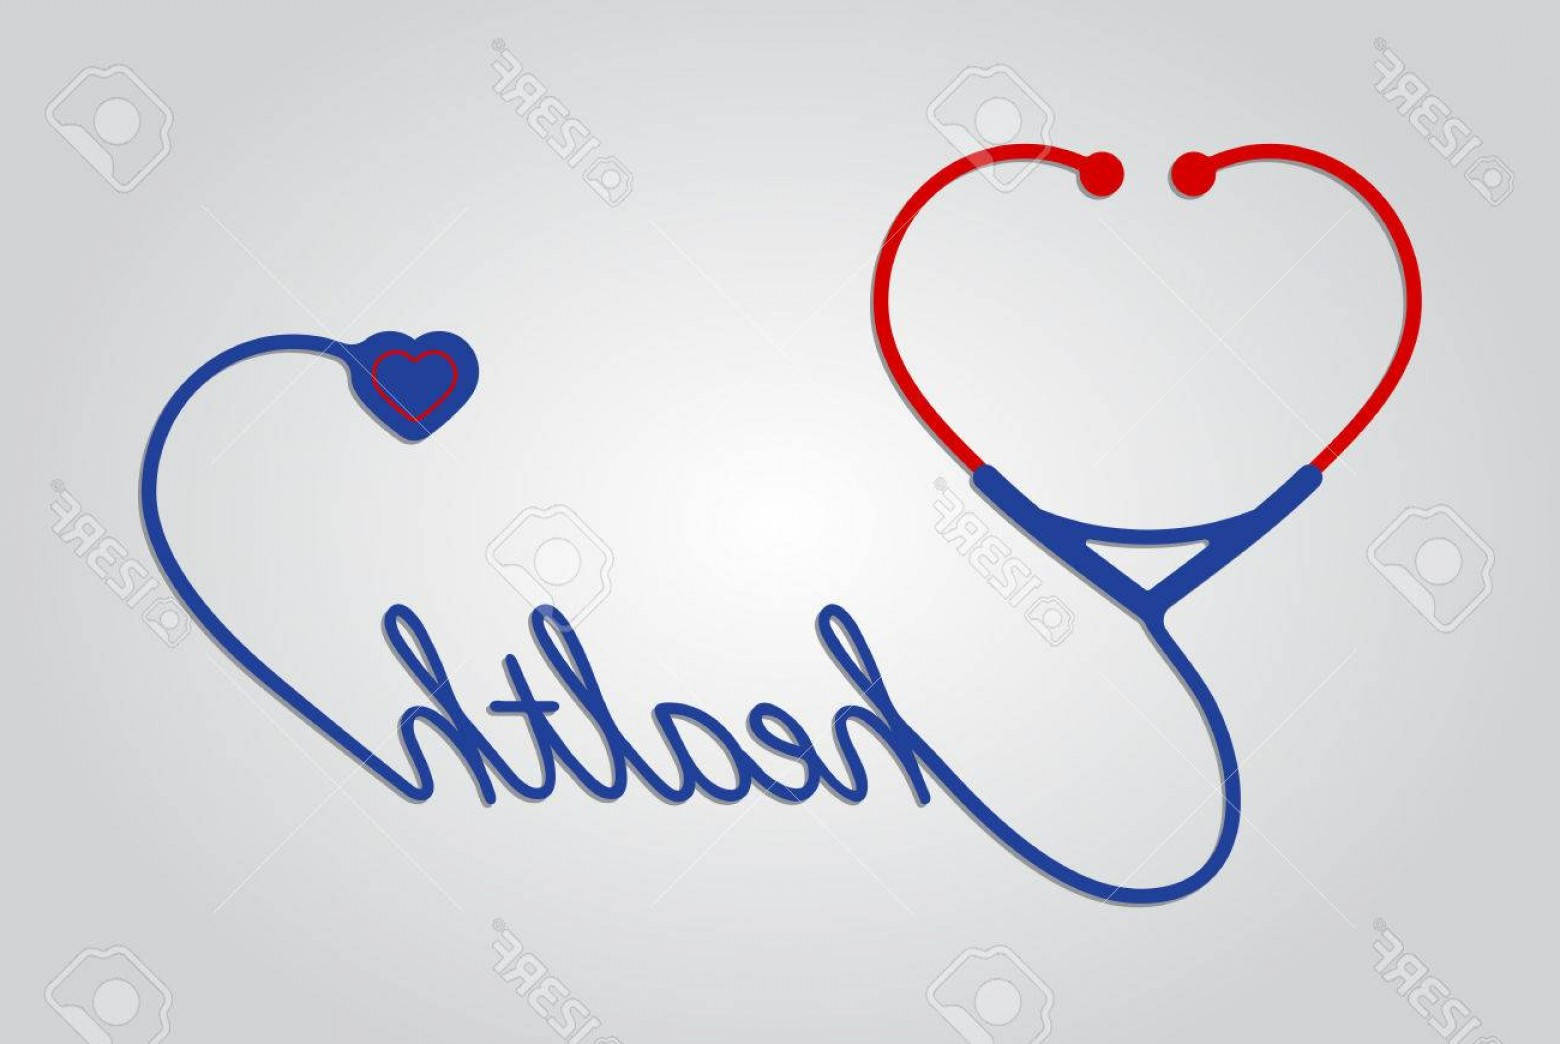 Stethoscope With Heart Vector Art: Photostock Vector Stethoscope With Heart Medical Symbol Vector